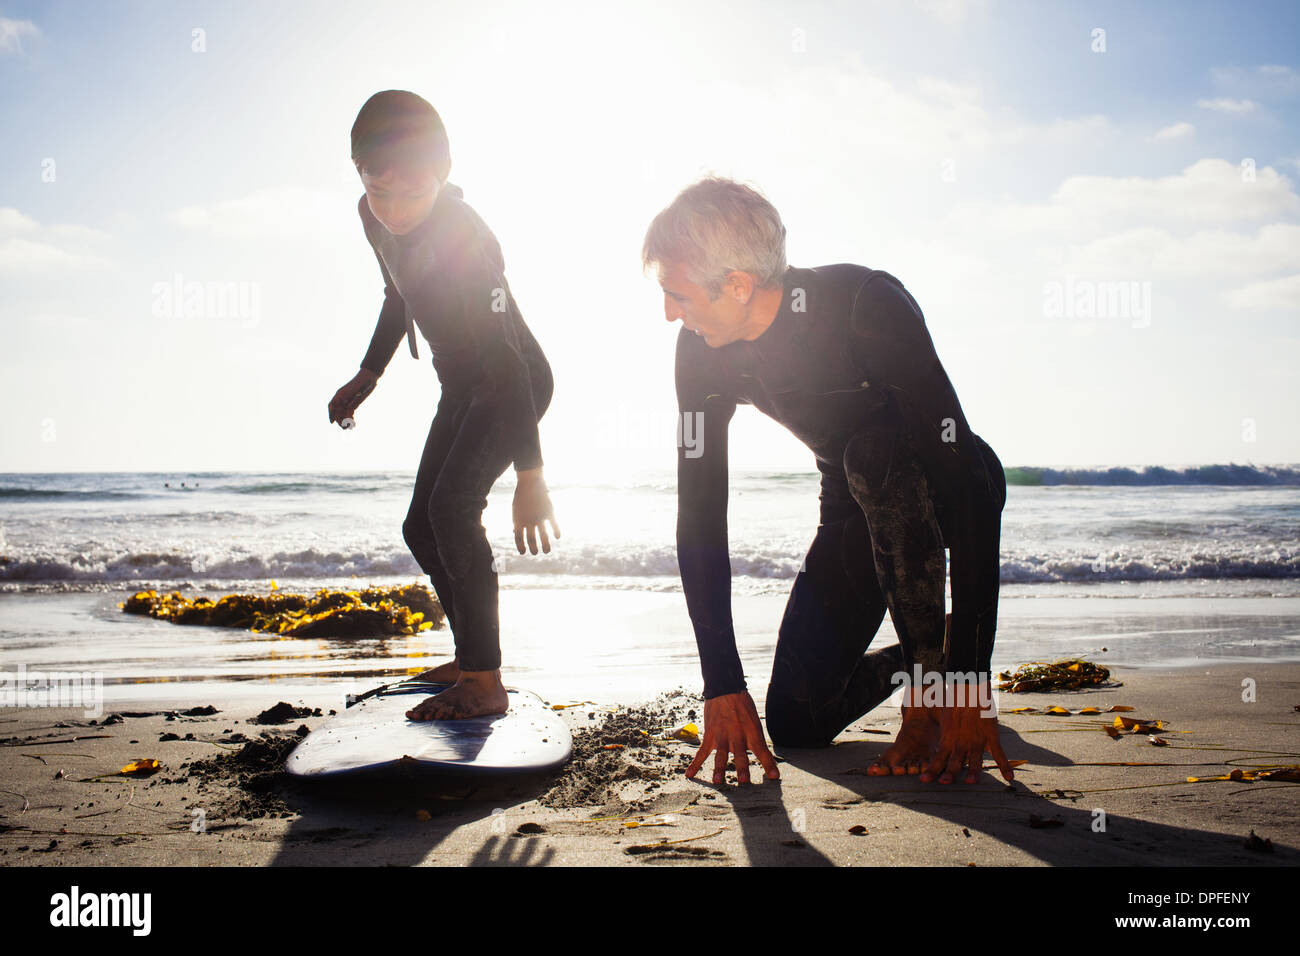 Father and son practicing with surfboard on beach, Encinitas, California, USA - Stock Image